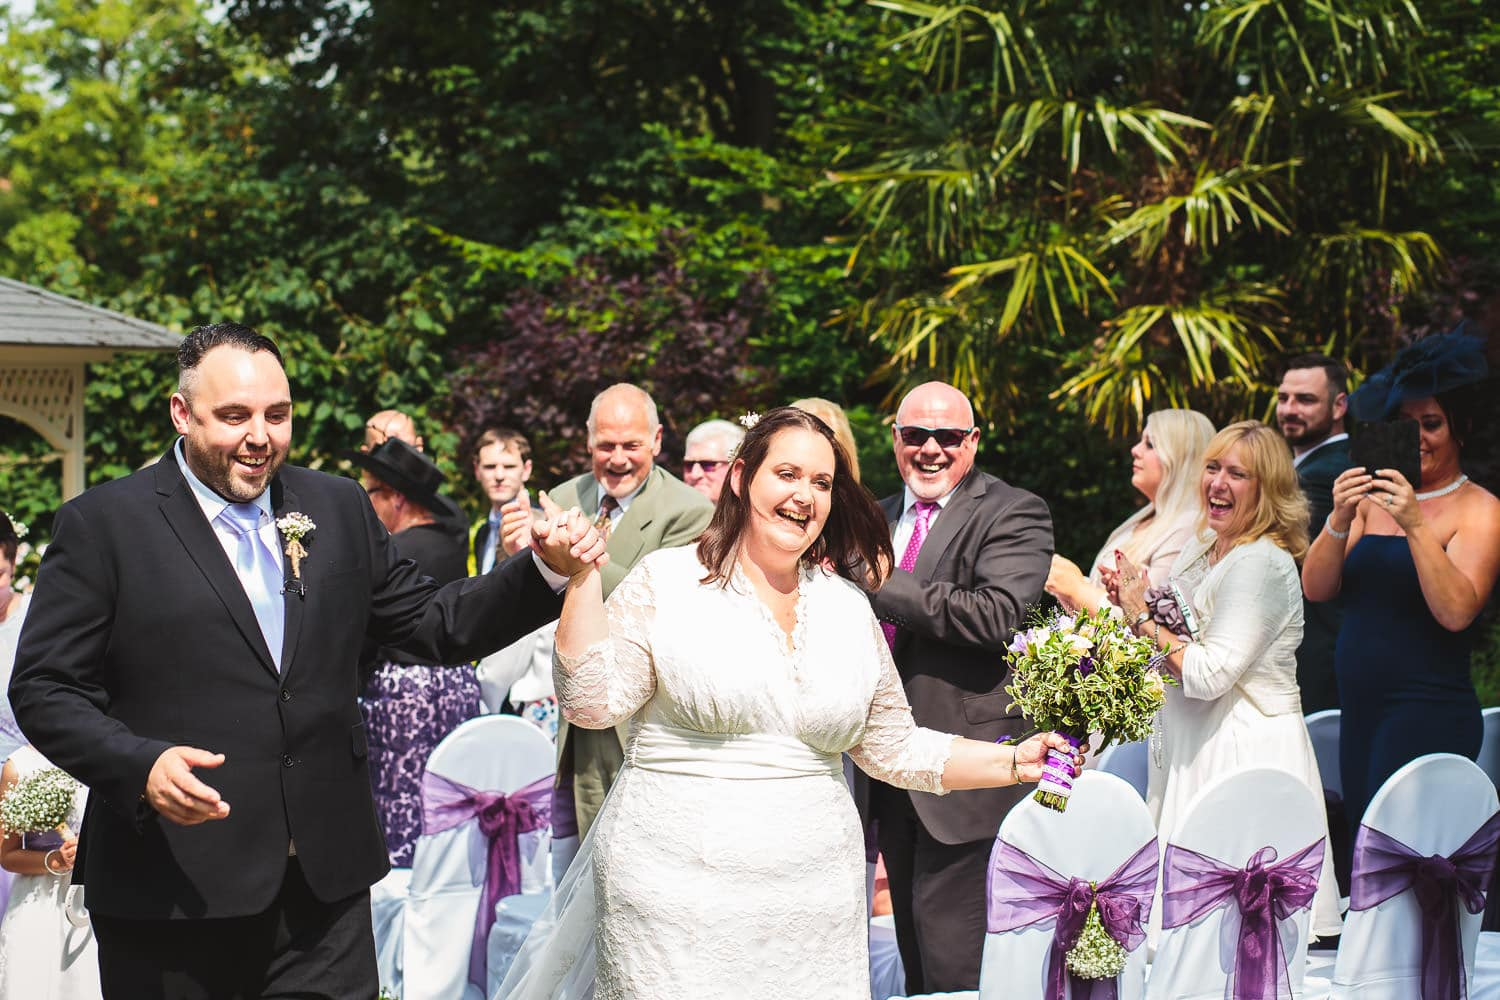 warwick house wedding guests smile nicely at couple